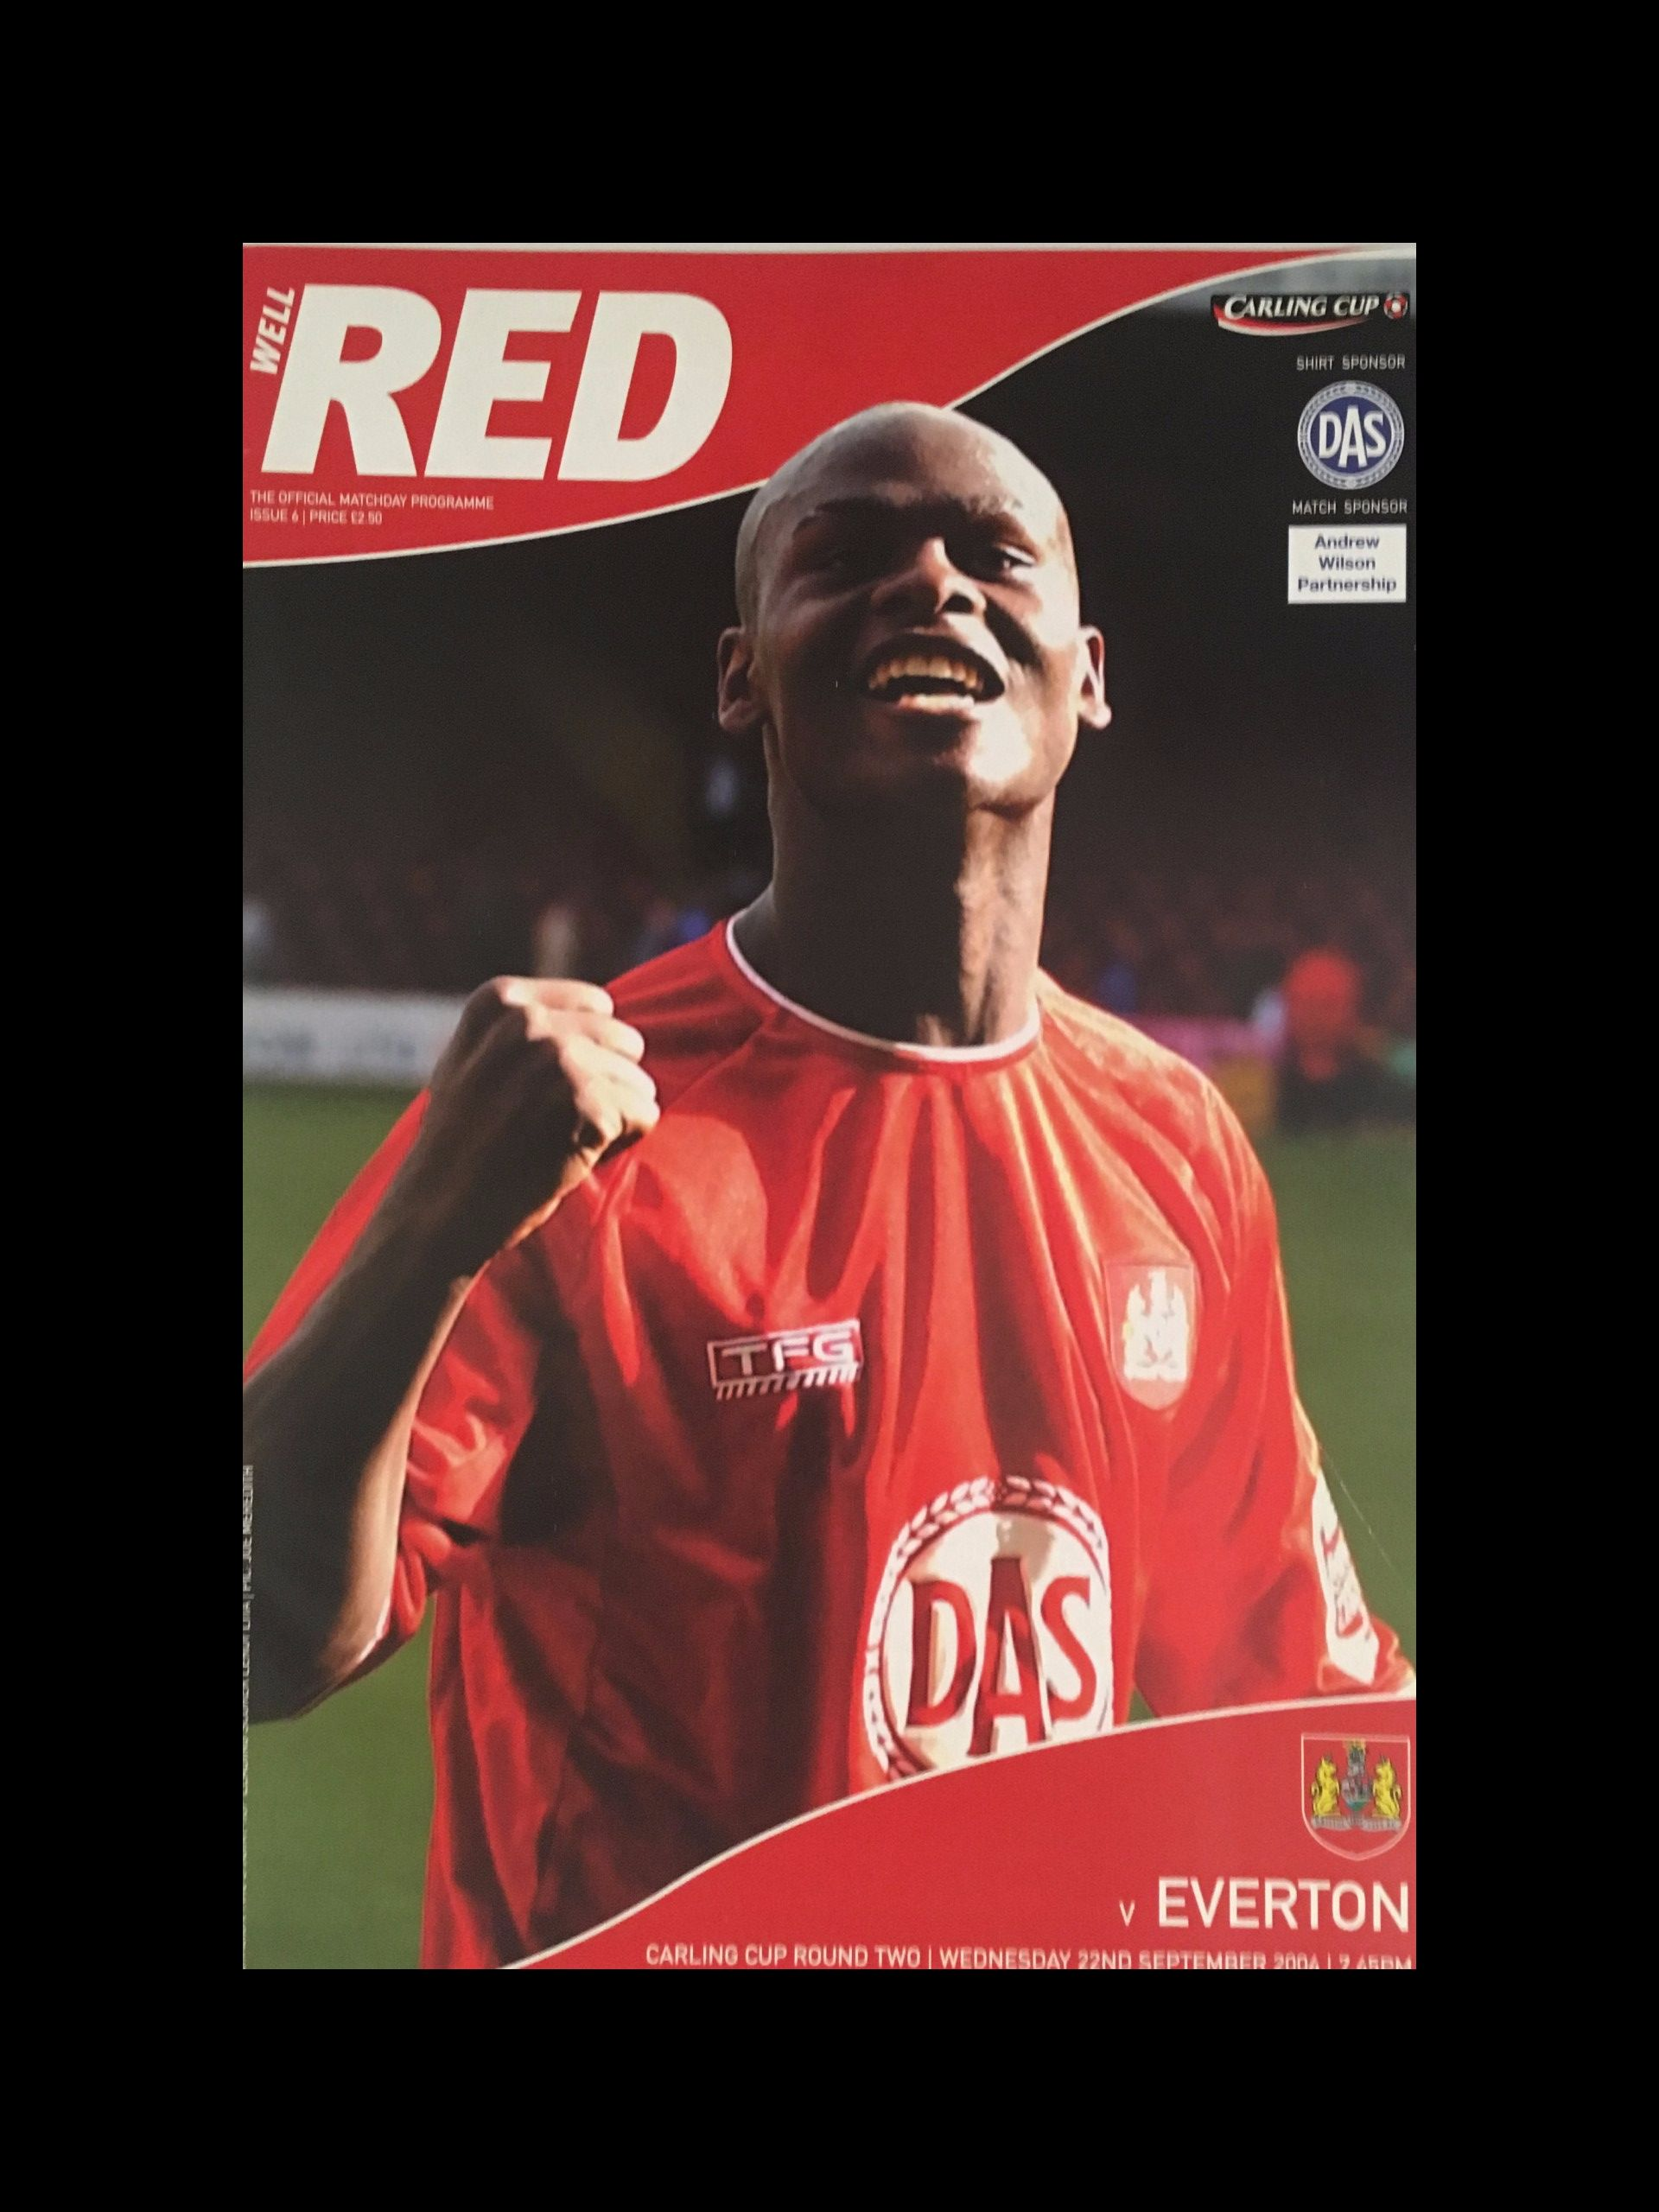 Bristol City v Everton 22-09-2004 Programme